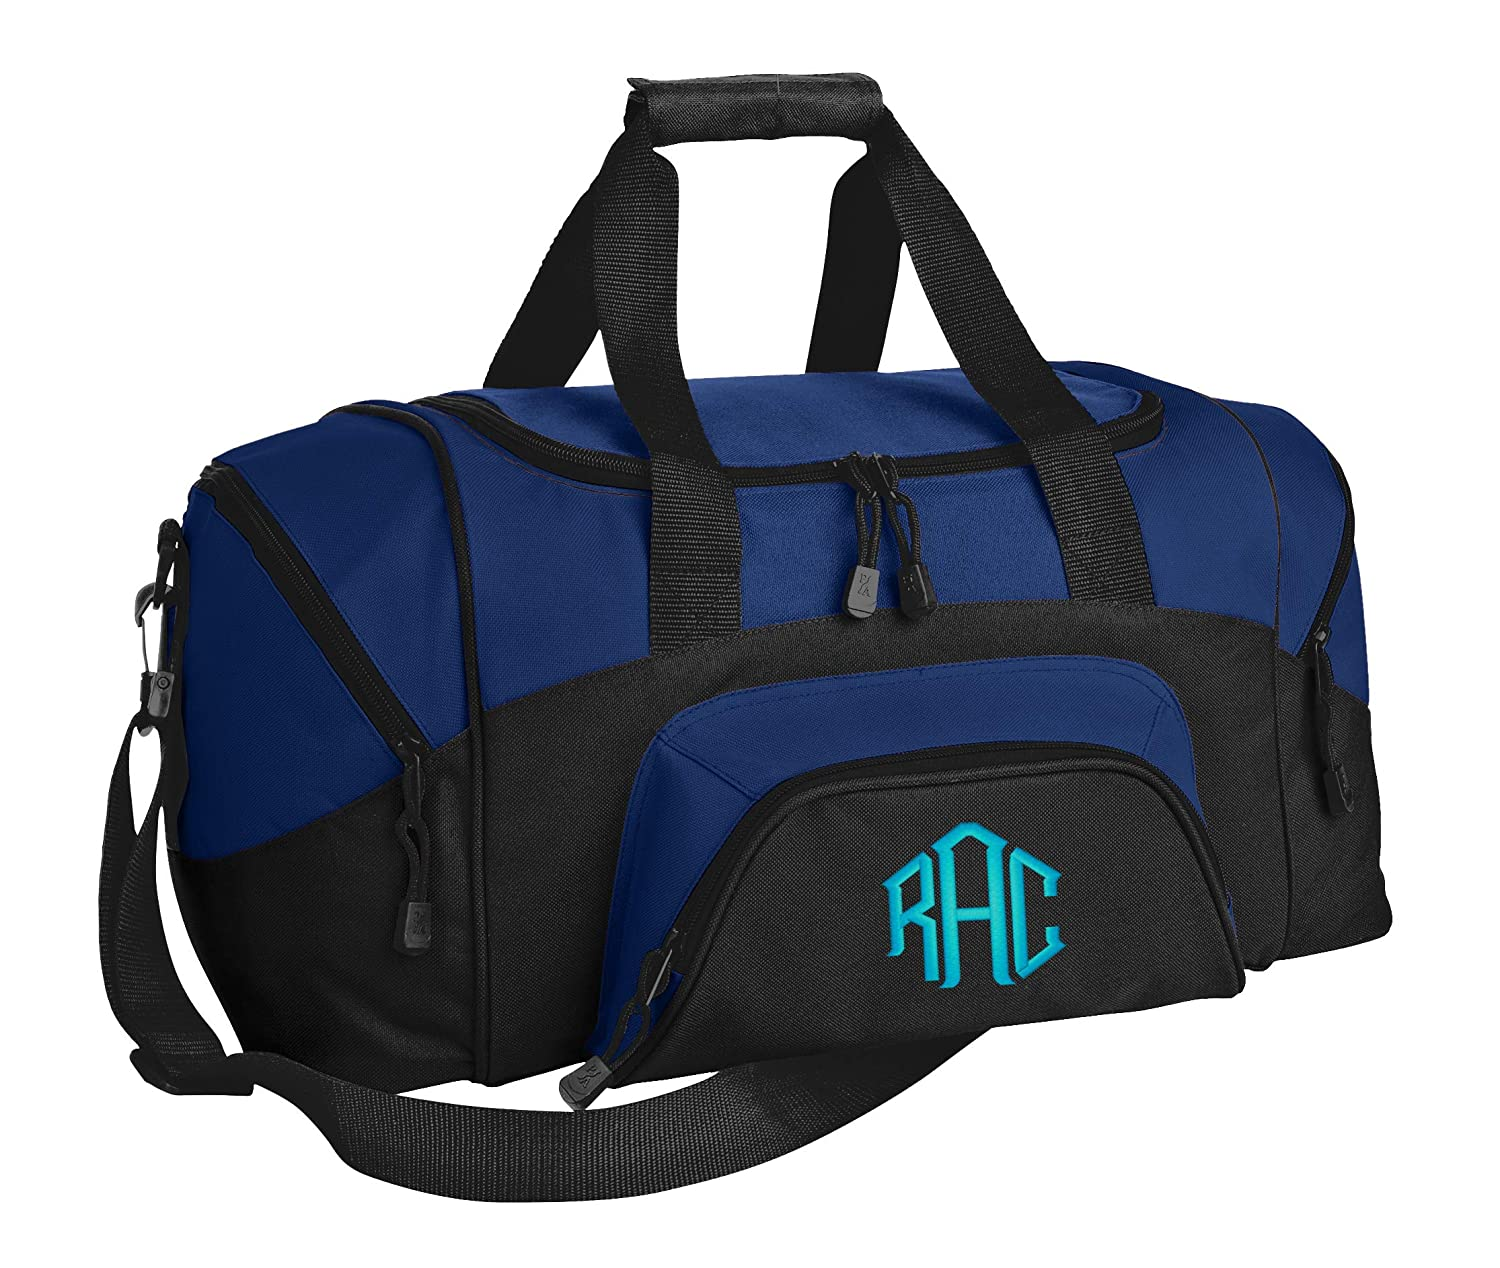 Personalized Monogrammed Small Gym Duffel Bag with Custom Text Sports Bag with Customizable Embroidered Monogram Design True Royal Black